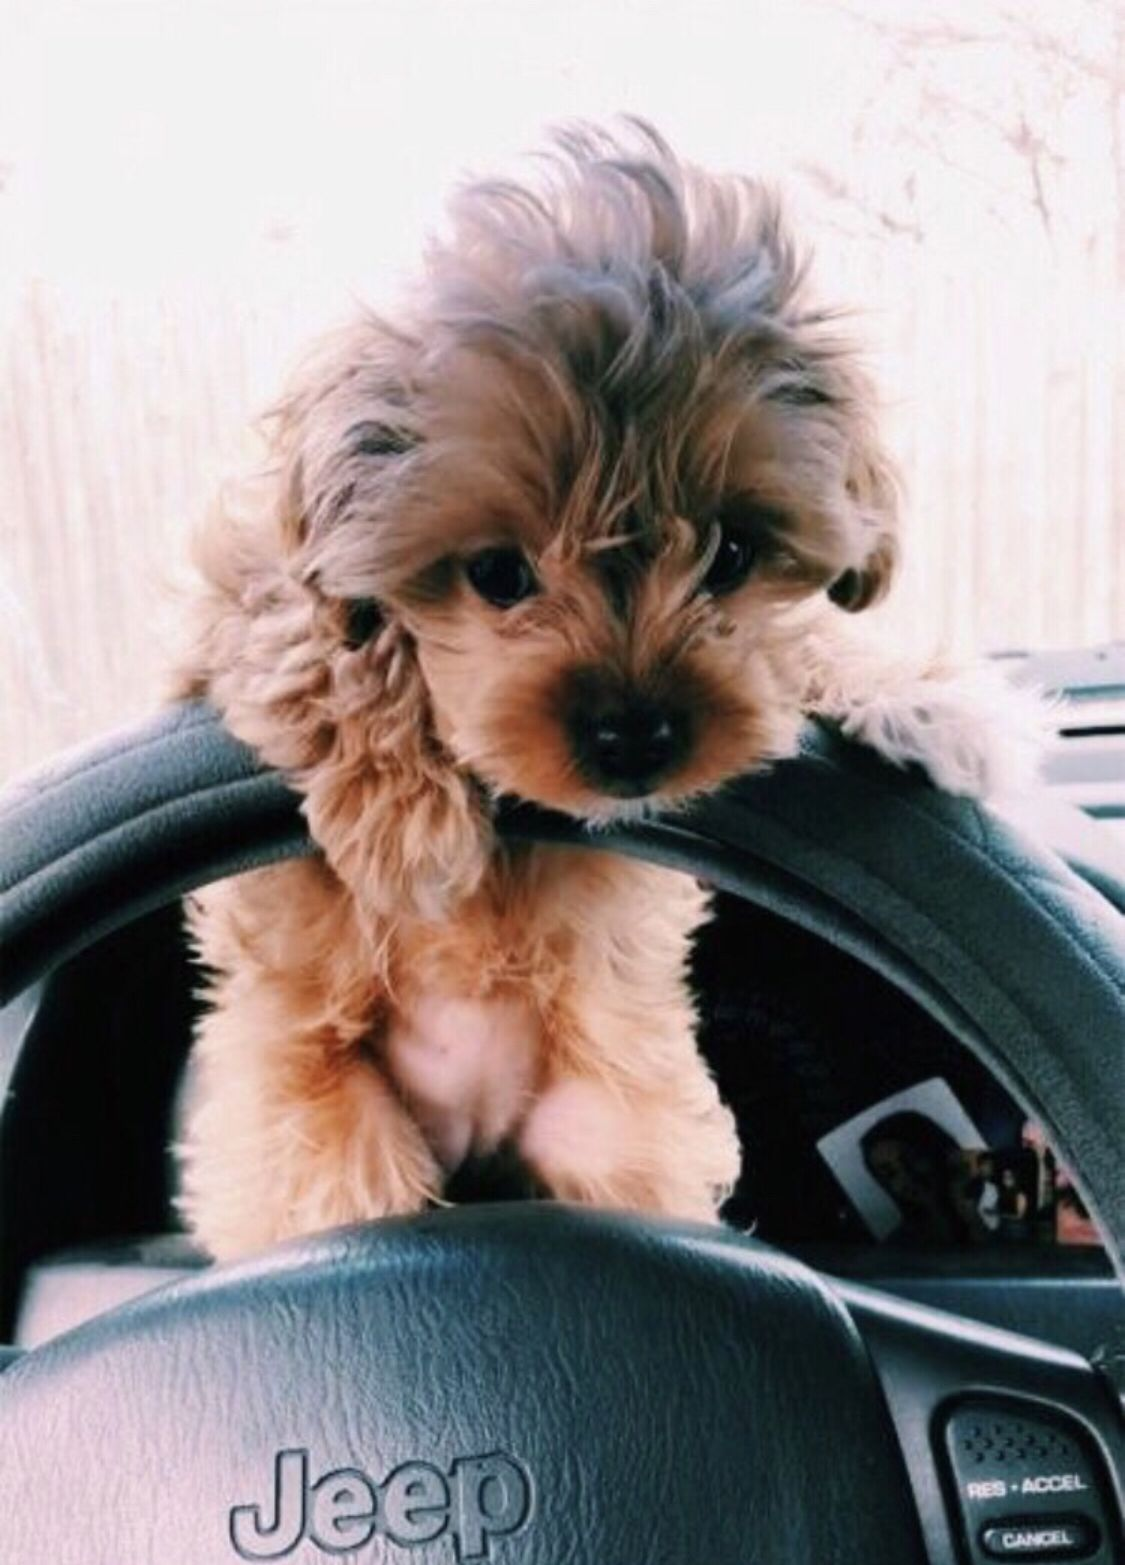 ℙ𝕚𝕟𝕥𝕖𝕣𝕖𝕤𝕥 𝙰𝚞𝚍𝚛𝚎𝚢 Cute baby animals, Puppies, Cute funny